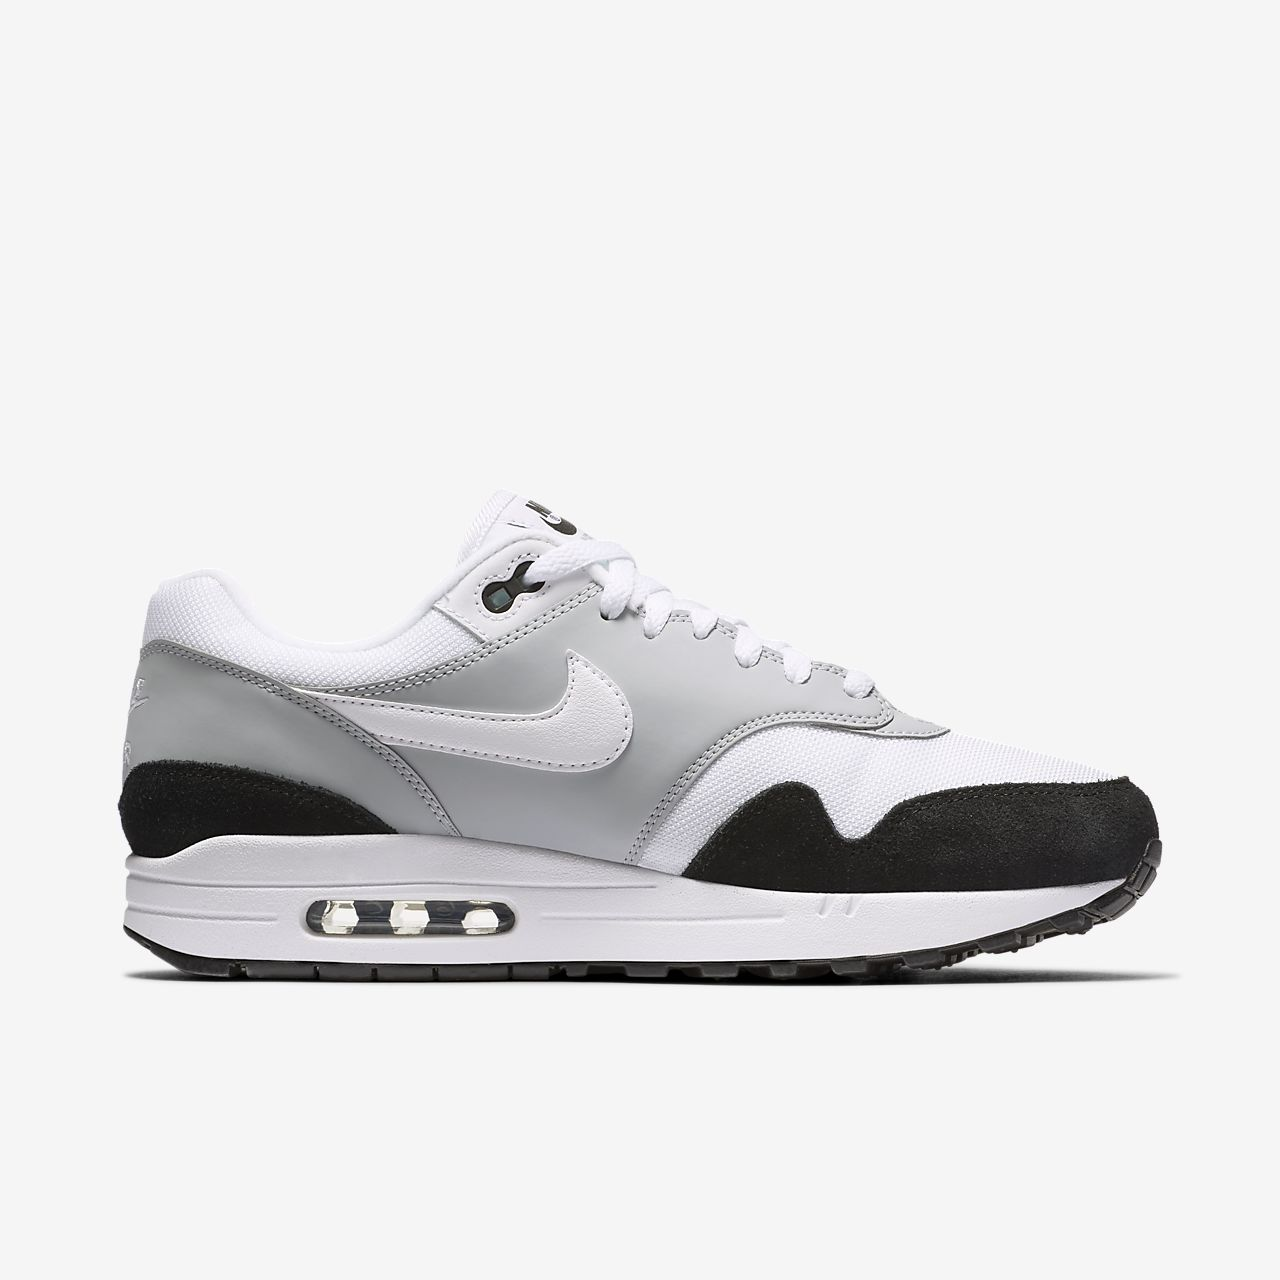 ... Chaussure Nike Air Max 1 pour Homme